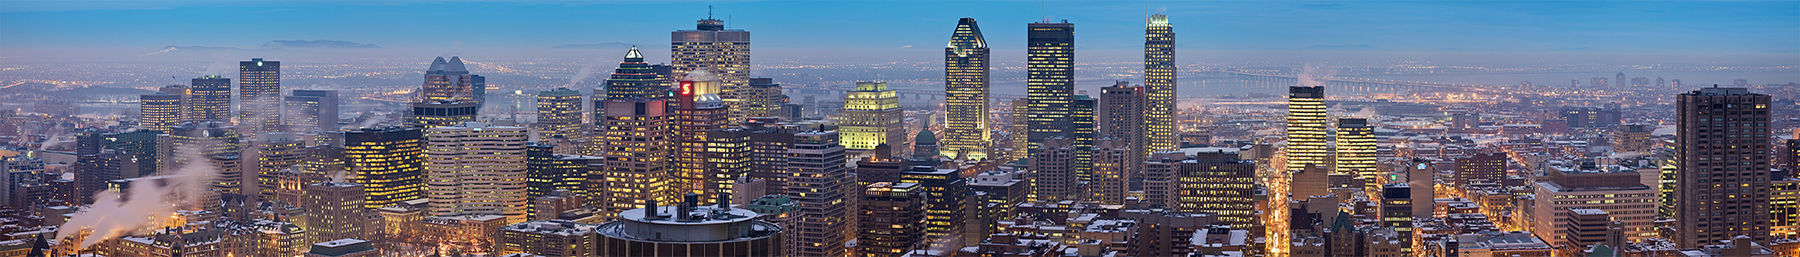 A panoramic view of Montreal from the top of Mount Royal